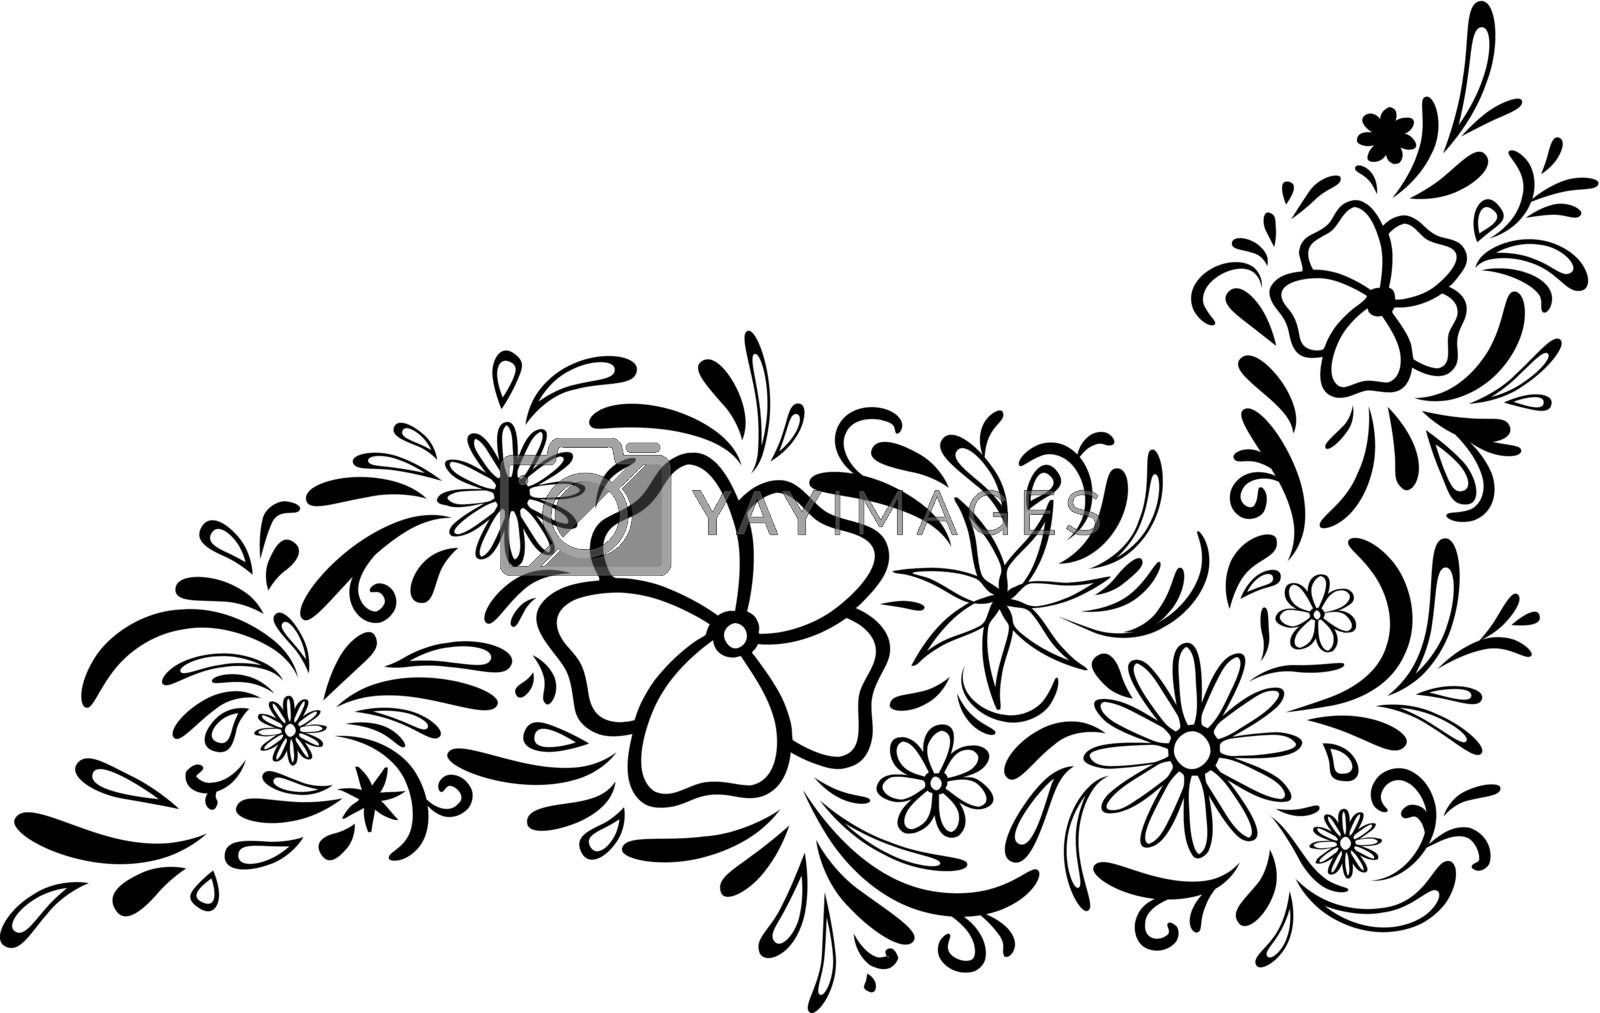 Abstract Floral Border, Copyspace For Your Text